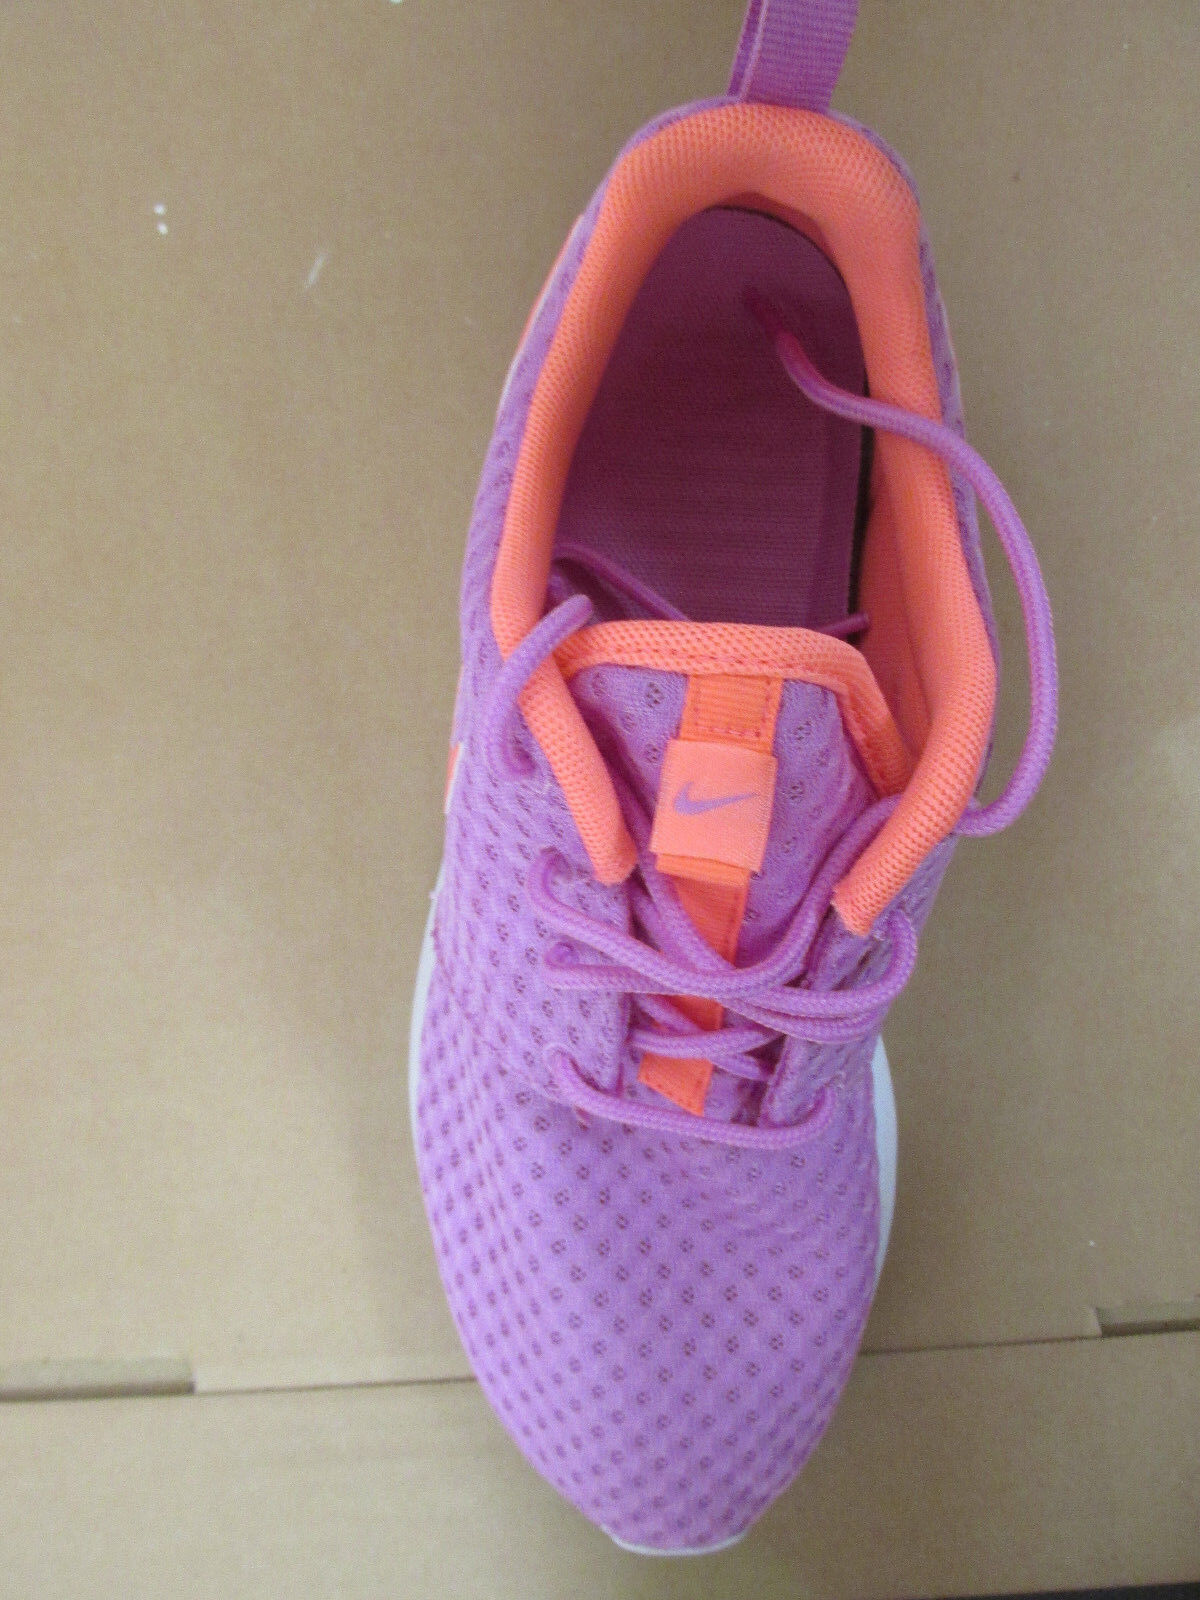 nike  Femme  rosherun running BR running rosherun trainers 724850 581 Baskets  chaussures  CLEARANCE f39a2a